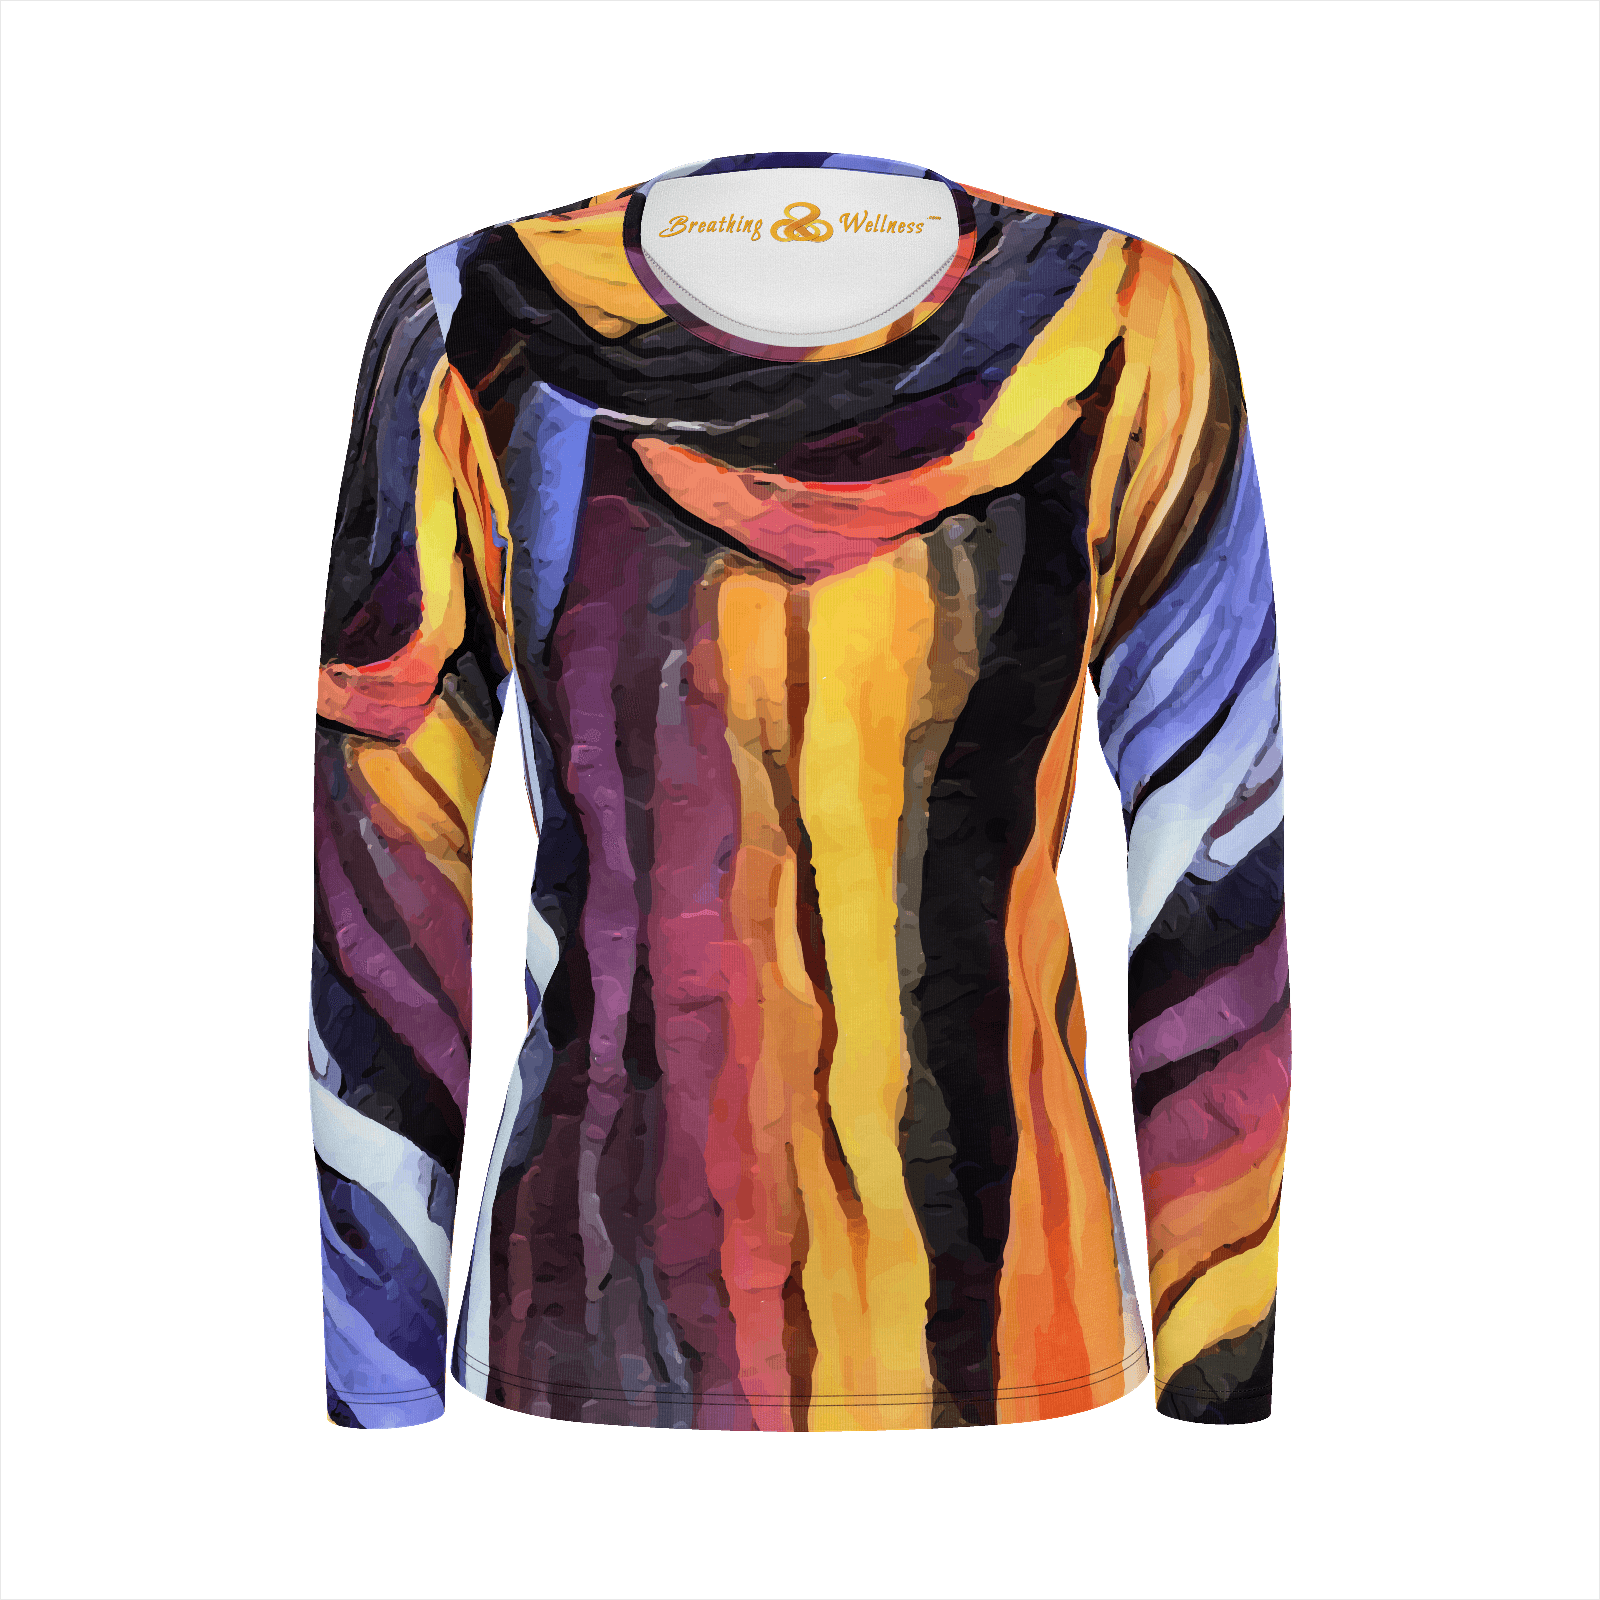 Natural Woman - Deluxe Long Sleeve T-Shirt 100% Pima Cotton_artist-Carlo-Bressan_Breathing-Wellness